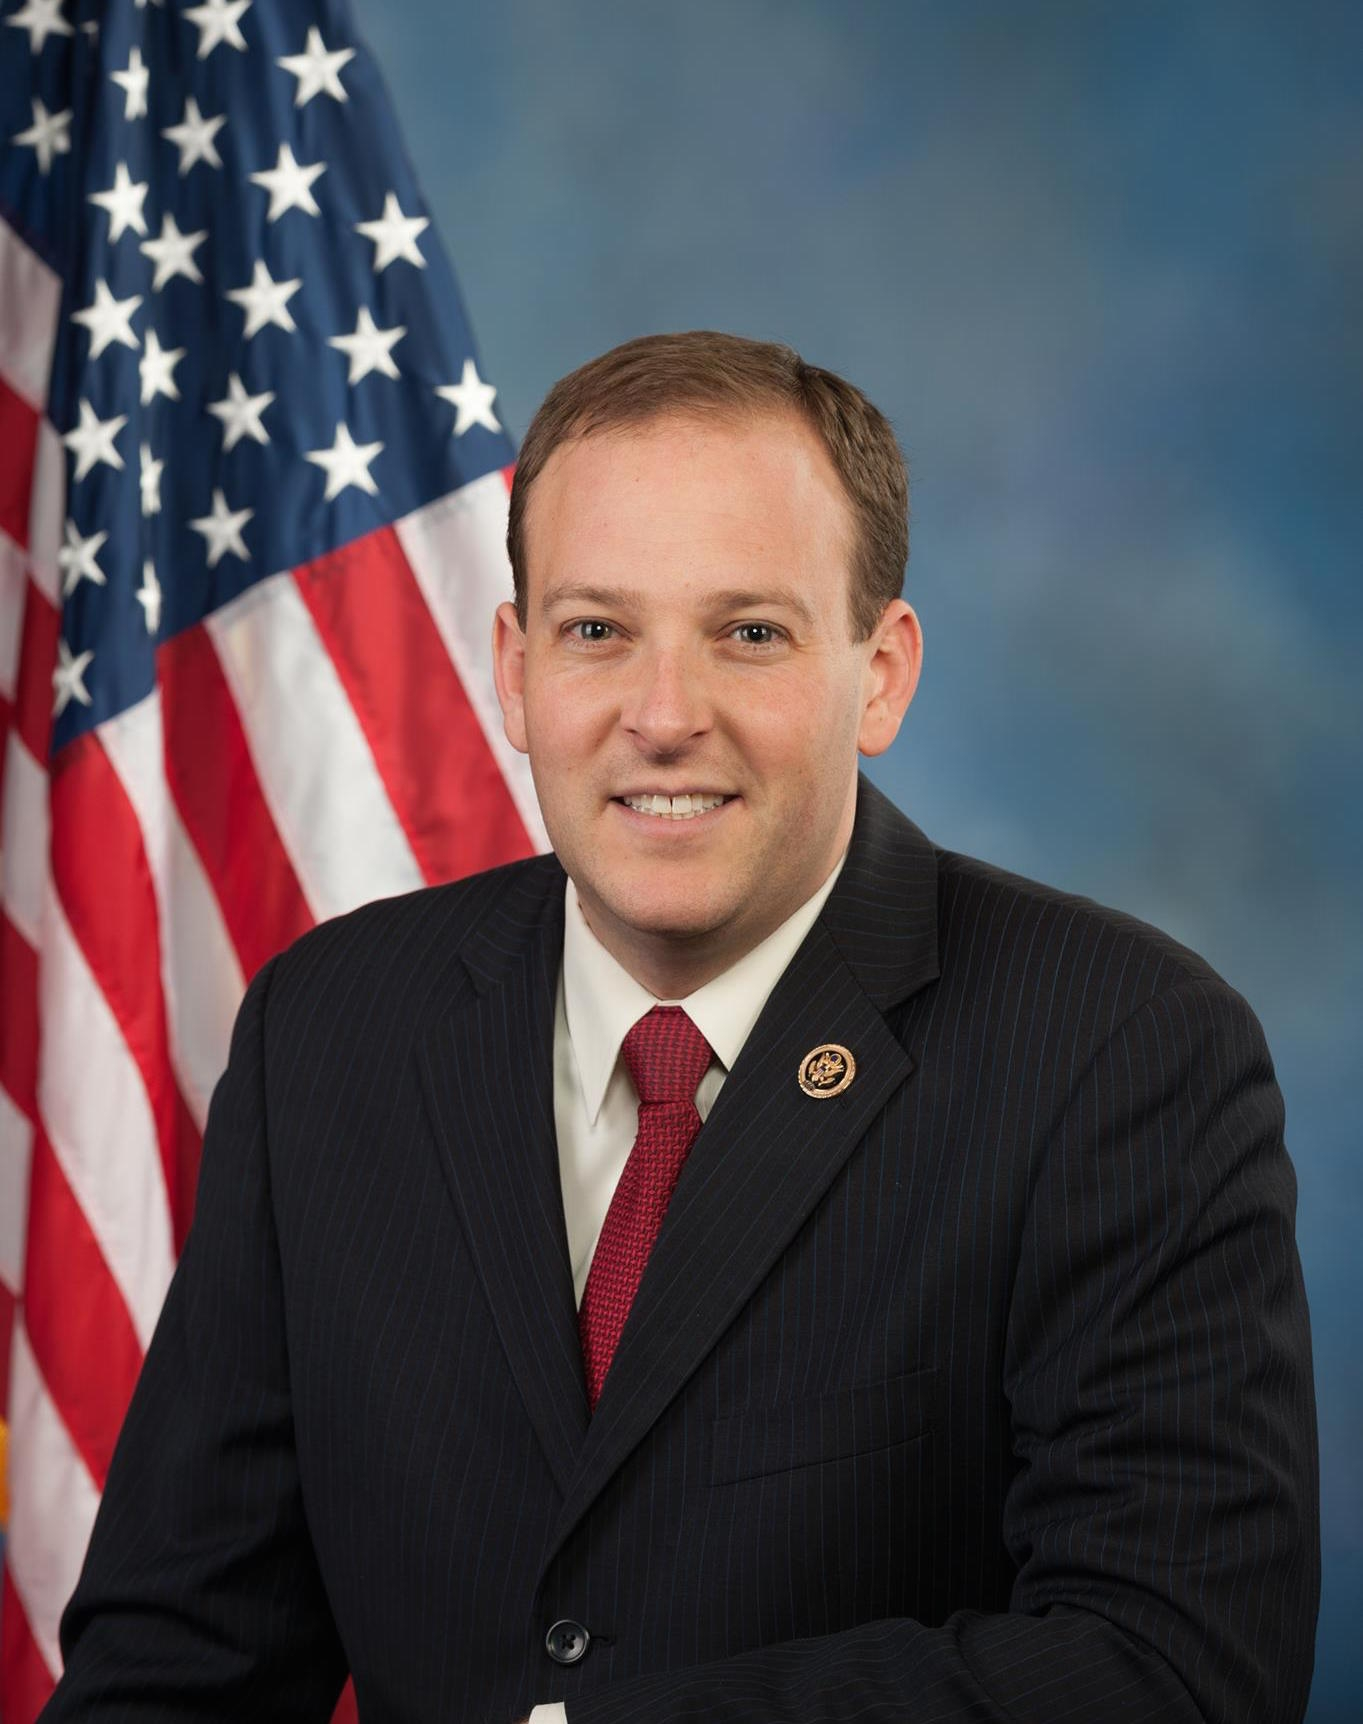 Rep. Lee Zeldin (R-N.Y.) represents New York's first congressional district. (Wikimedia Commons)